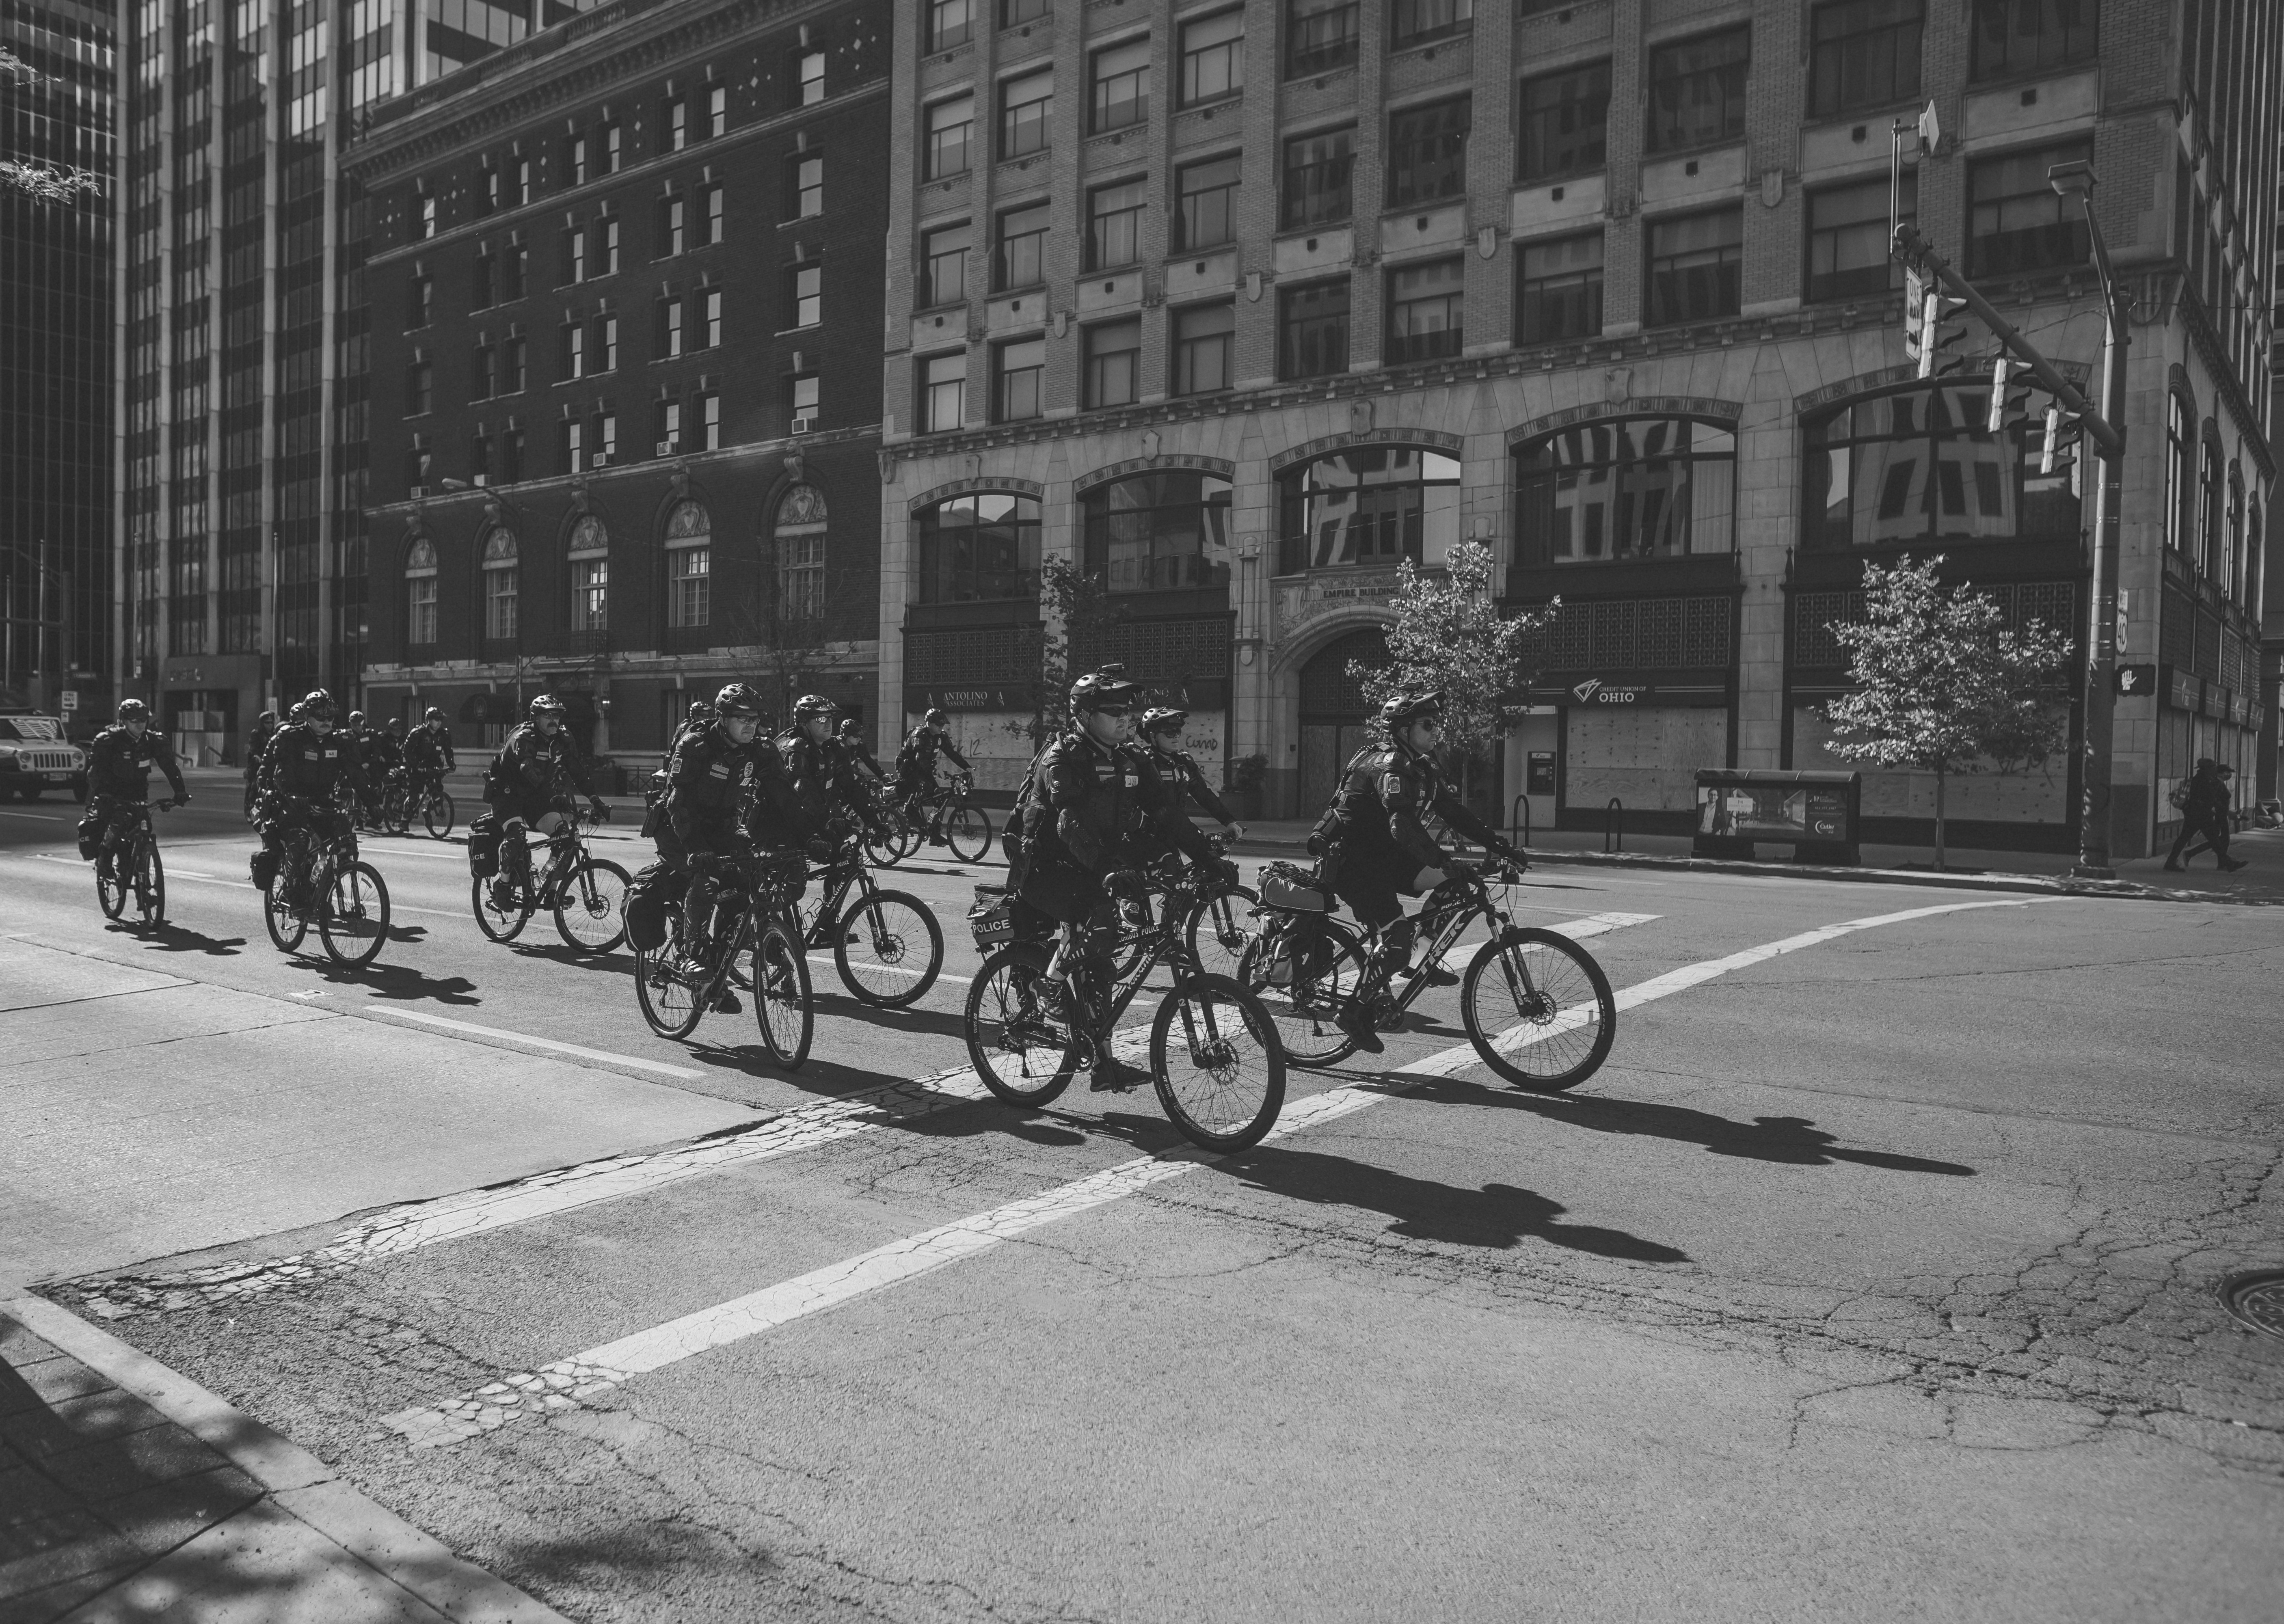 A black and white photograph. More than fifteen police officers on bicycles ride in the street from the right side of the frame and into the middle of the frame. They ride in three columns of about 5 officers. The background of the image shows buildings and the oncoming intersection.